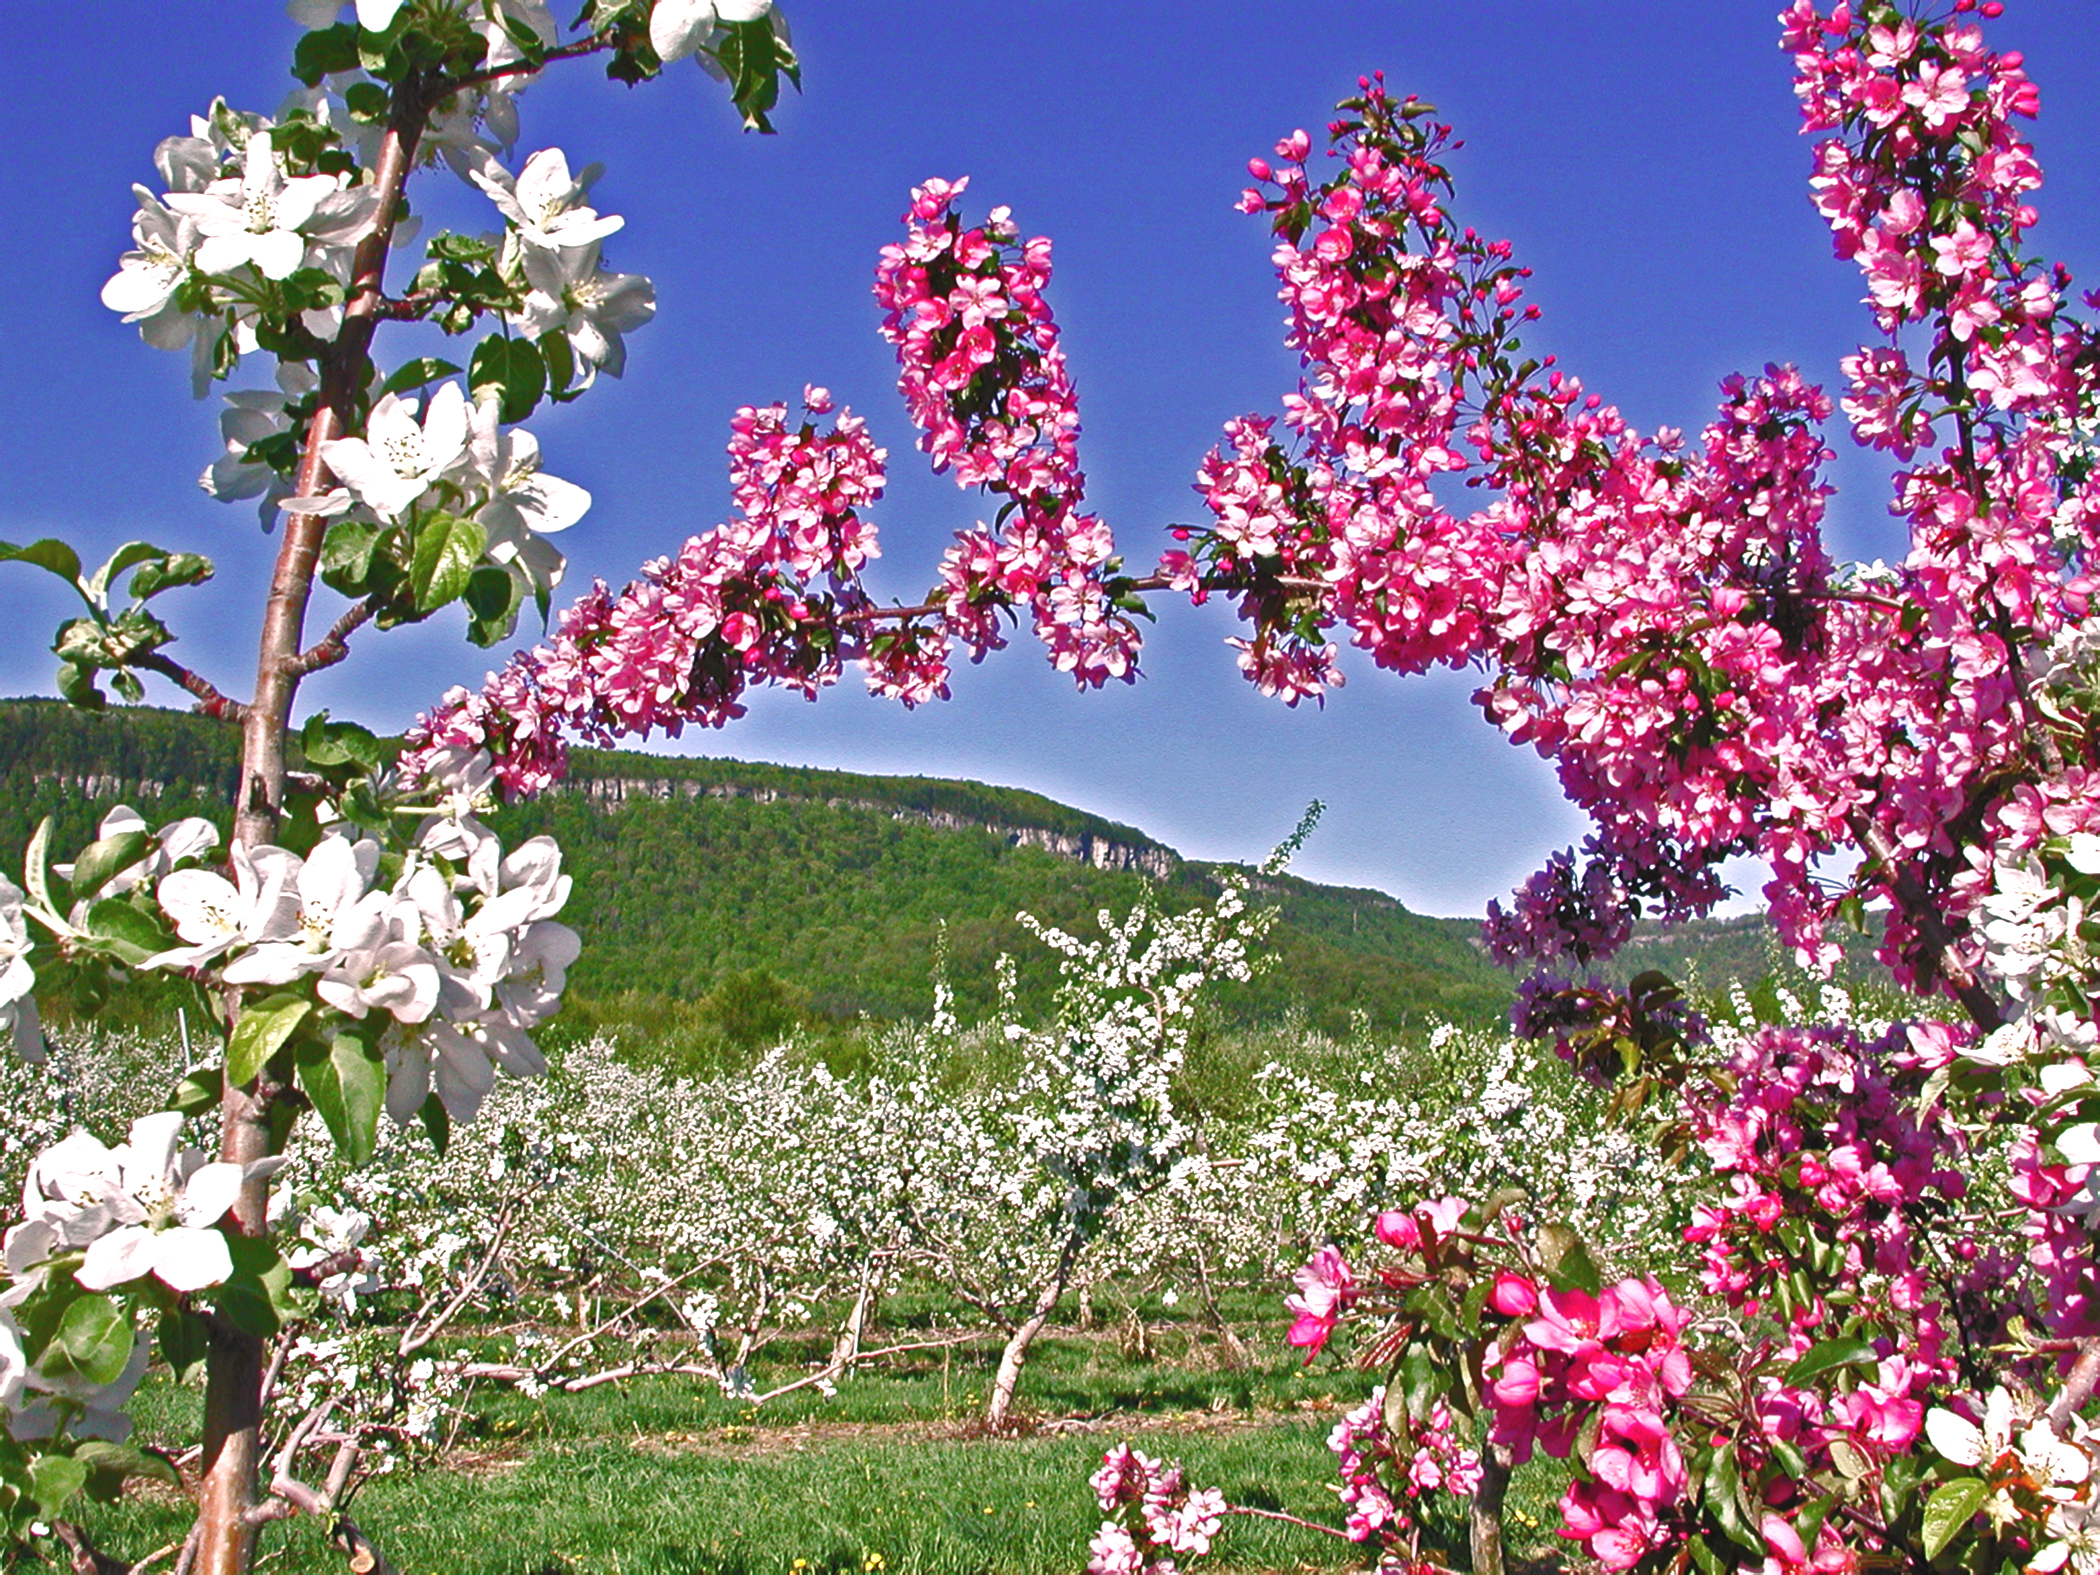 Apple trees in bloom at Indian Ladder Farms, a favorite fall destination for apple picking, cider donuts, and hard apple cider.